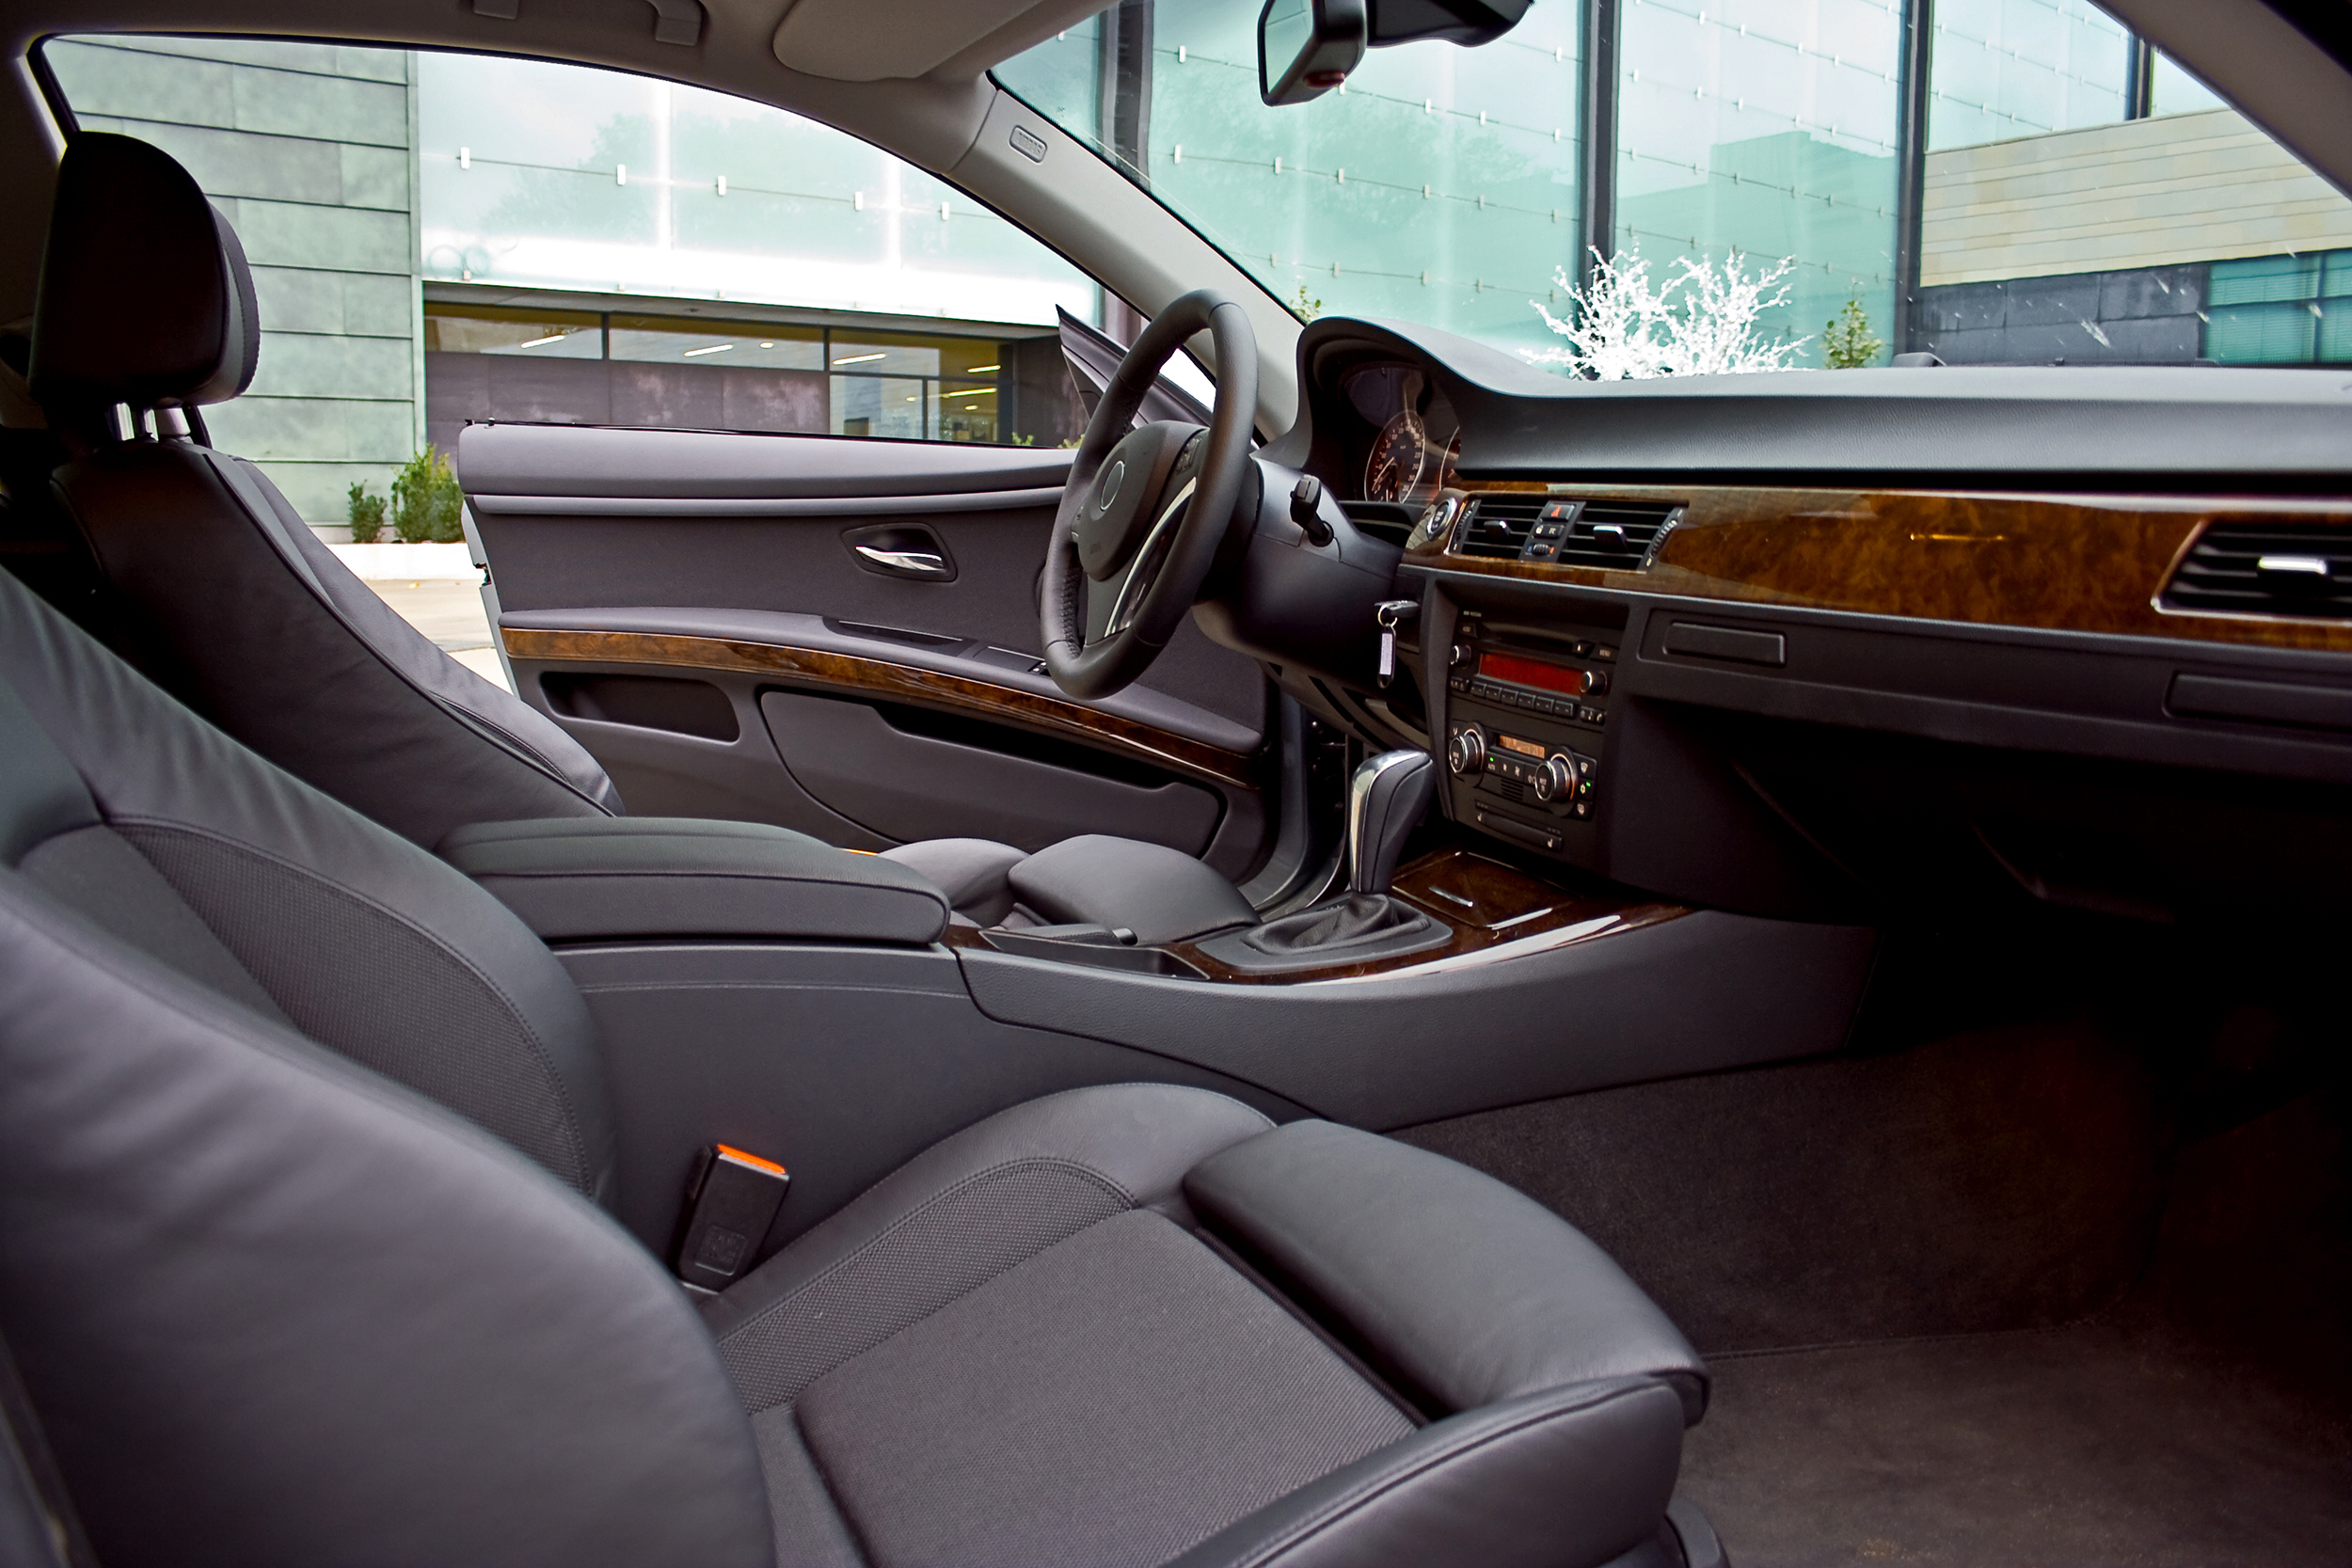 Car Interior-Black Cloth Seats